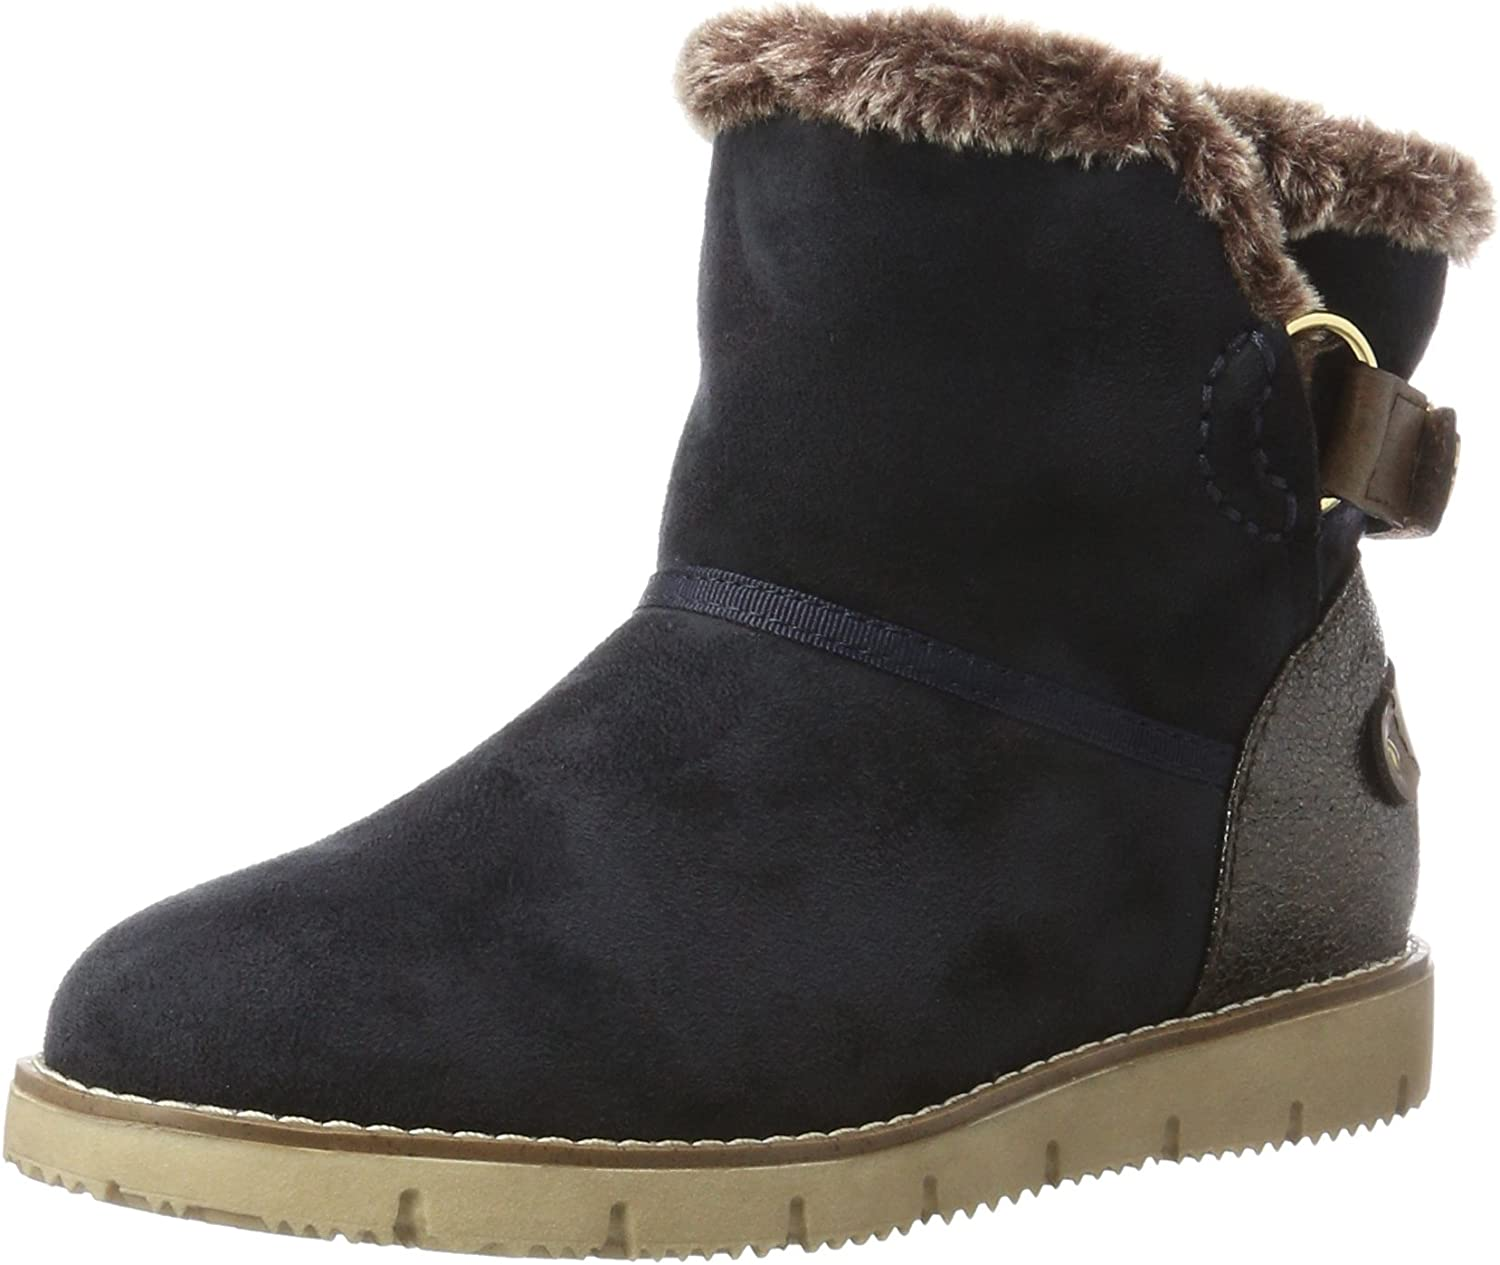 TOM TAILOR Women's Slouch Boots Max 63% Super special price OFF